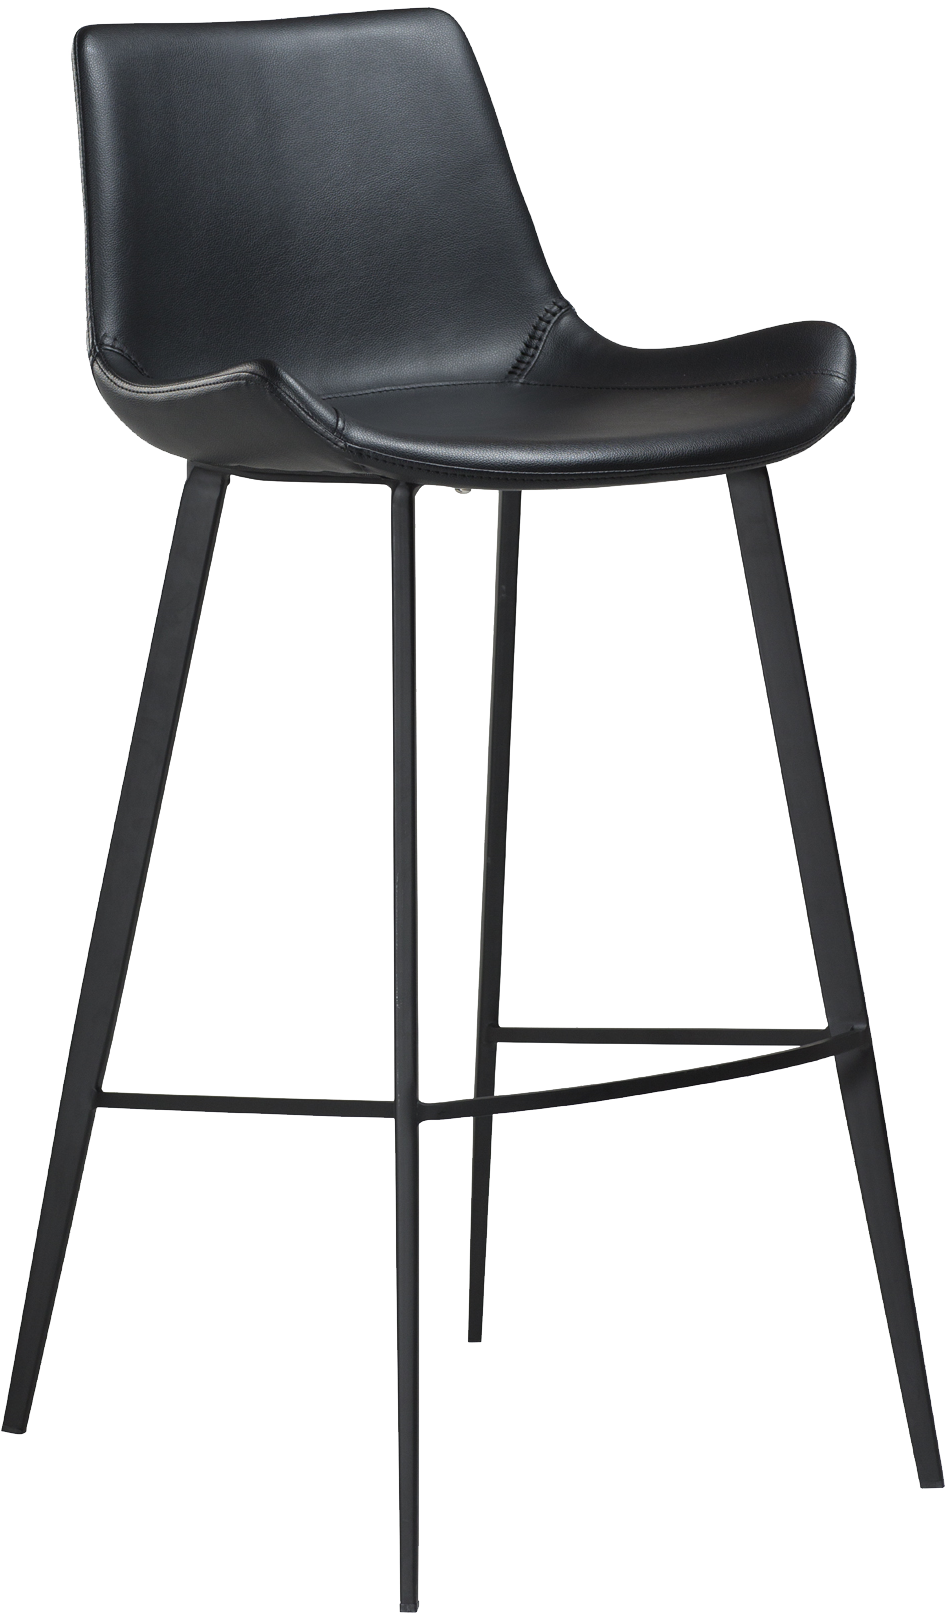 Phenomenal Danform Hype Bar Stool In Vintage Black Faux Leather With Black Legs Cjindustries Chair Design For Home Cjindustriesco